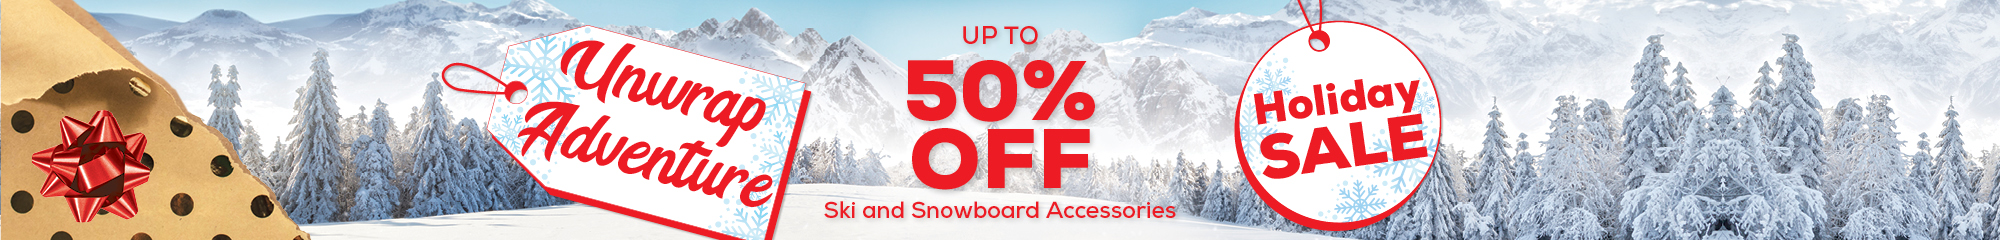 Up to 50% off Ski and Snowboard Accessories